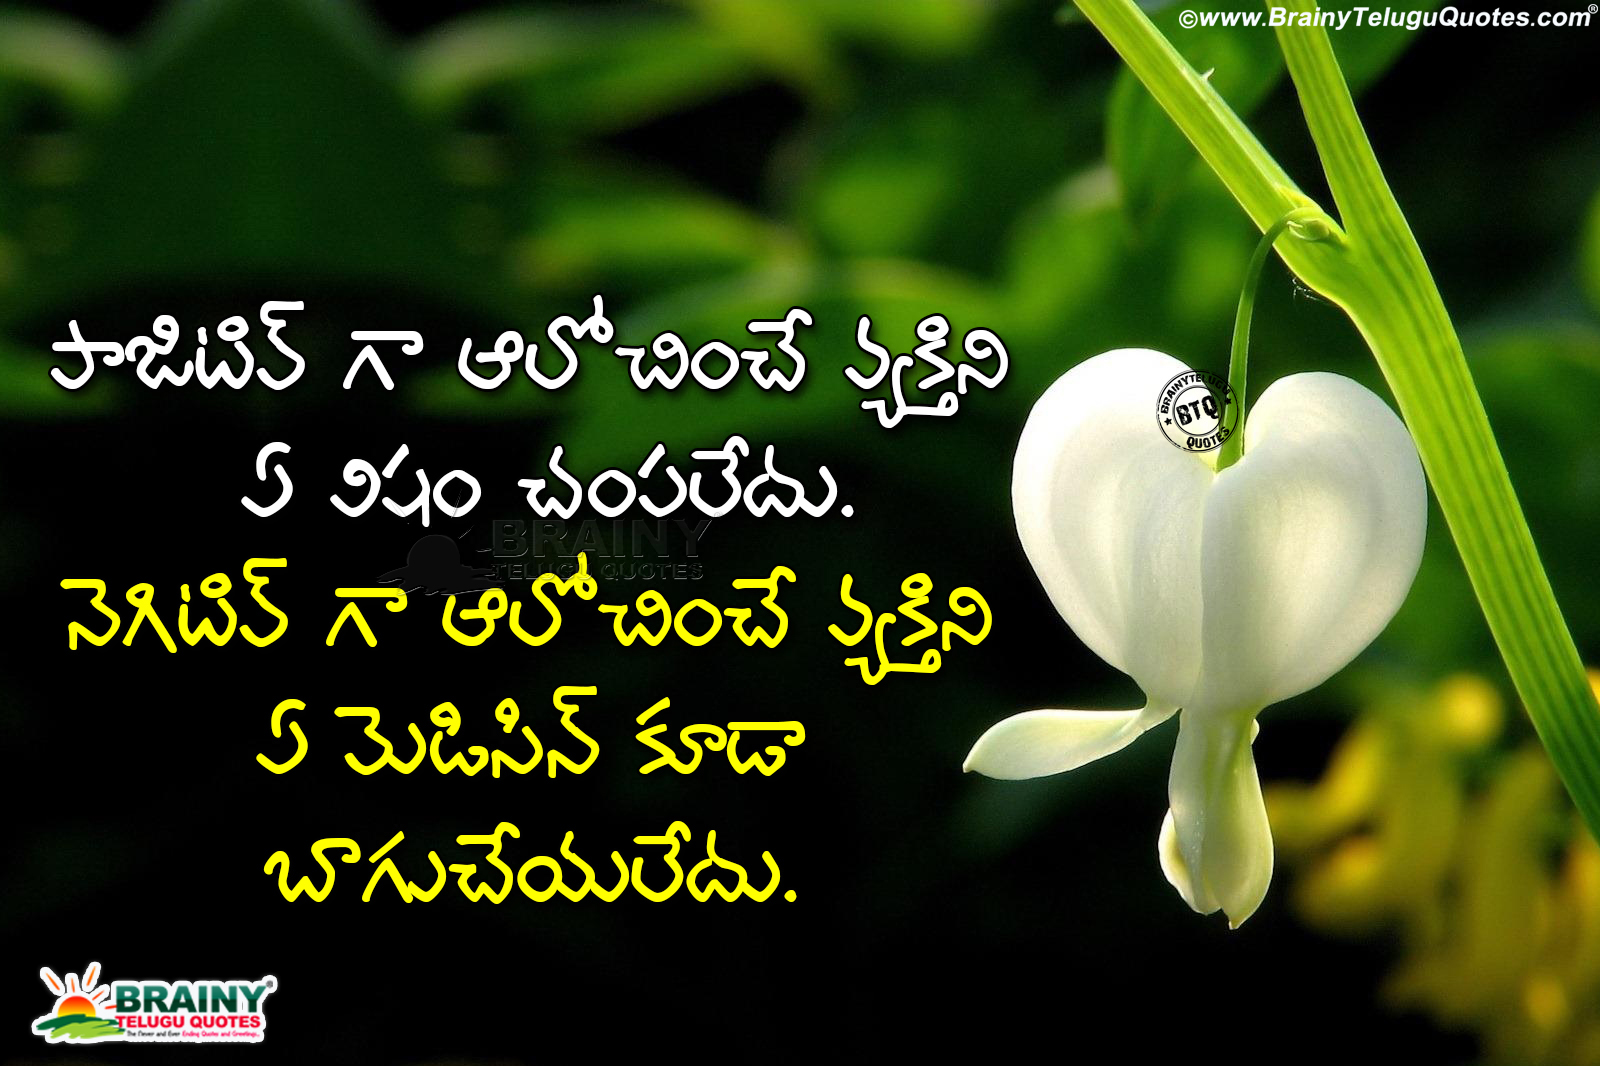 Telugu Positive Attitude Messages Nice Quotes Hd Wallpapers